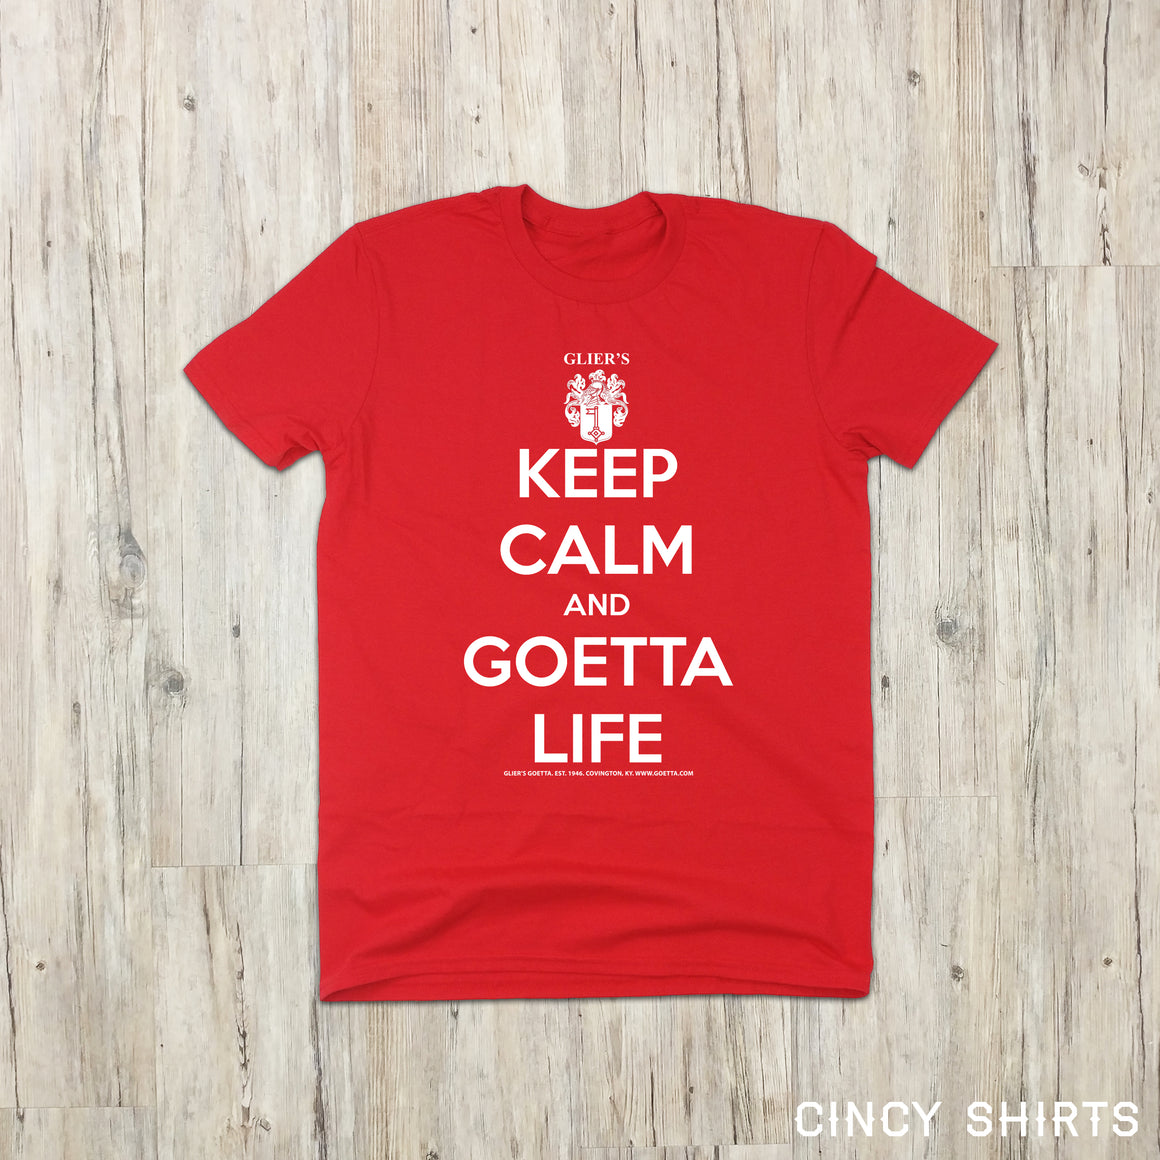 Keep Calm and Goetta Life - Glier's Goetta - Youth Sizes